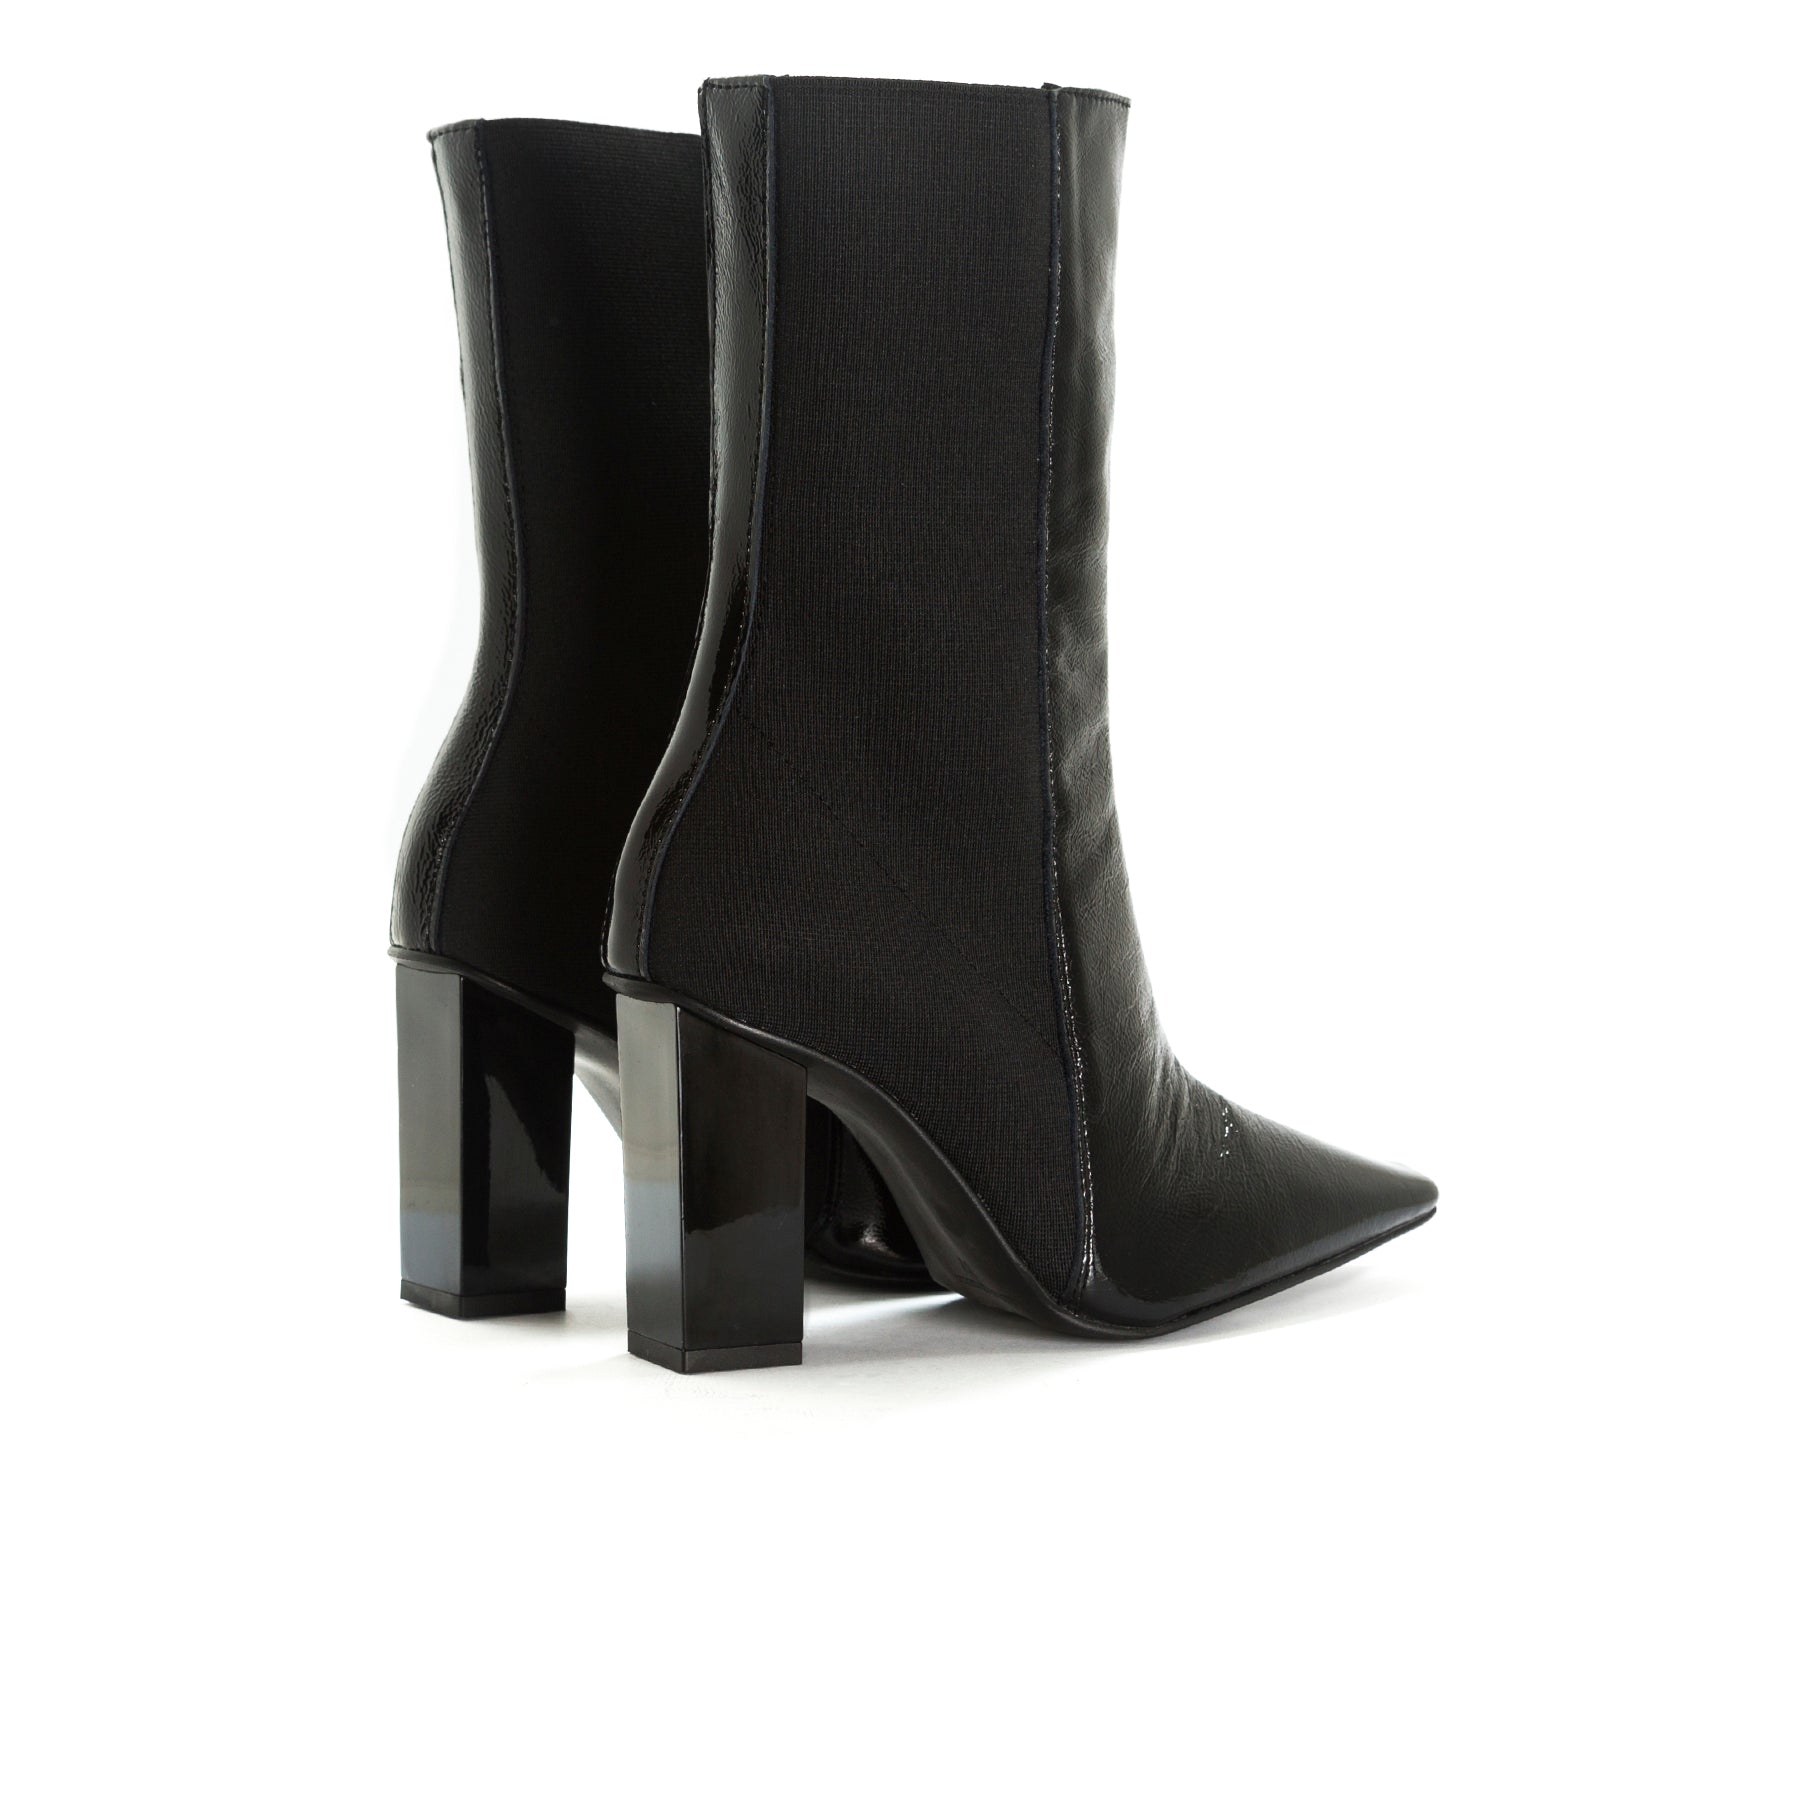 Reine Black Naplack Ankle Boots